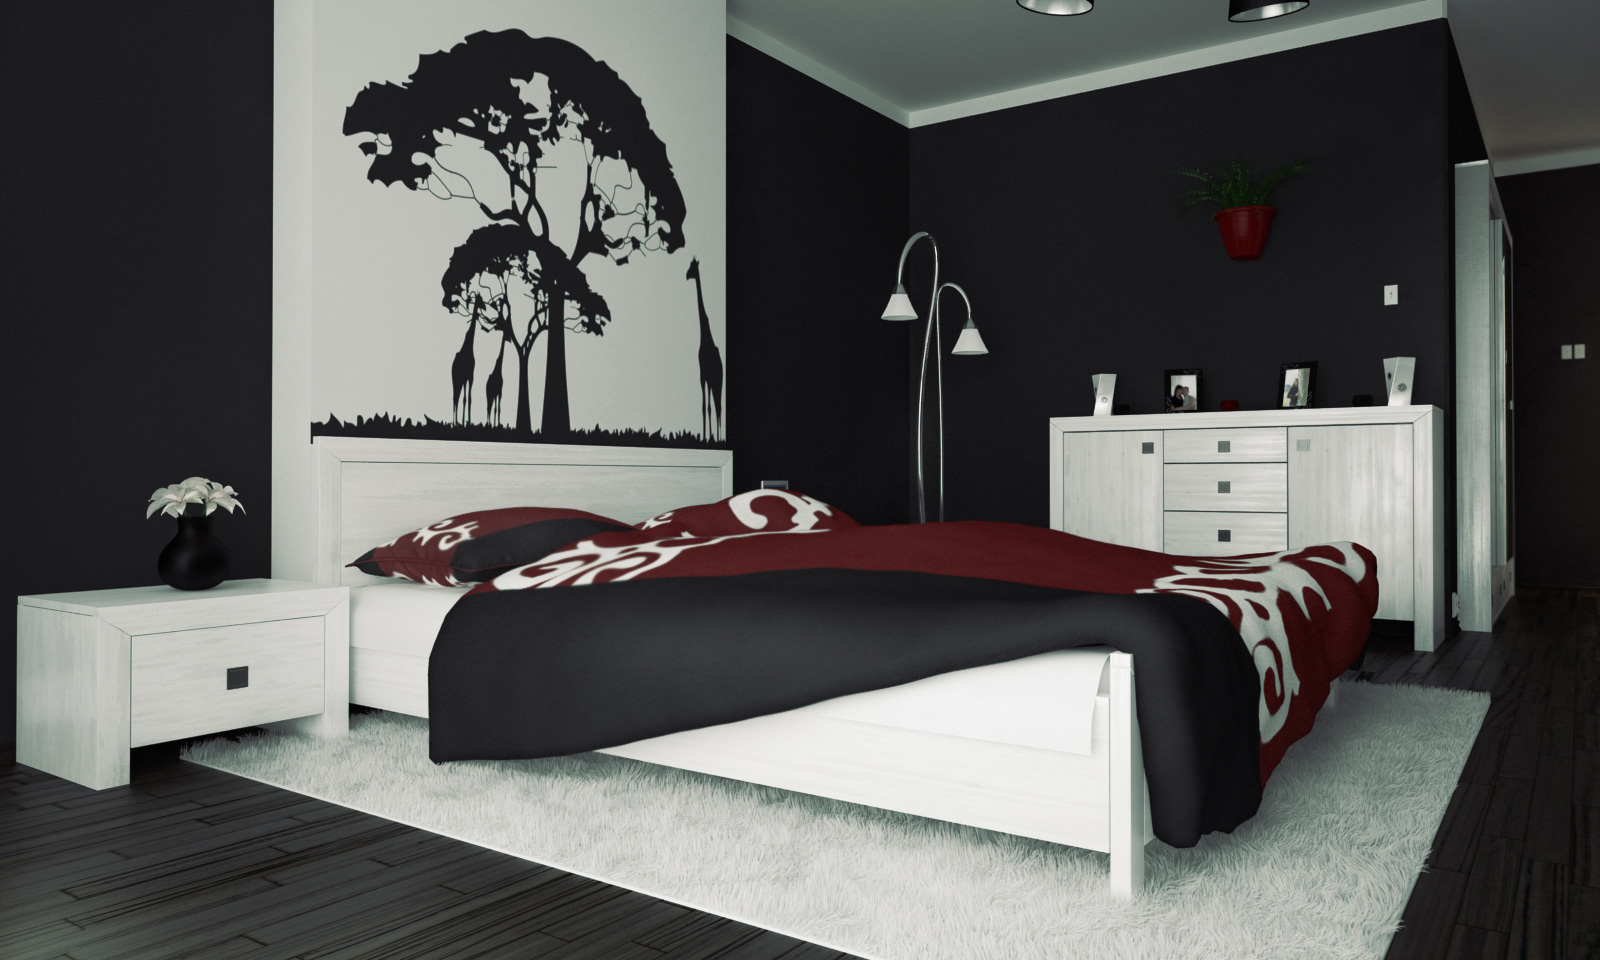 interior-killer-modern-red-black-and-white-bedroom-decoration-using-black-and-white-tree-bedroom-wall-mural-including-black-white-bedroom-wall-paint-and-modern-white-night-stand-inspiring-picture-of-r